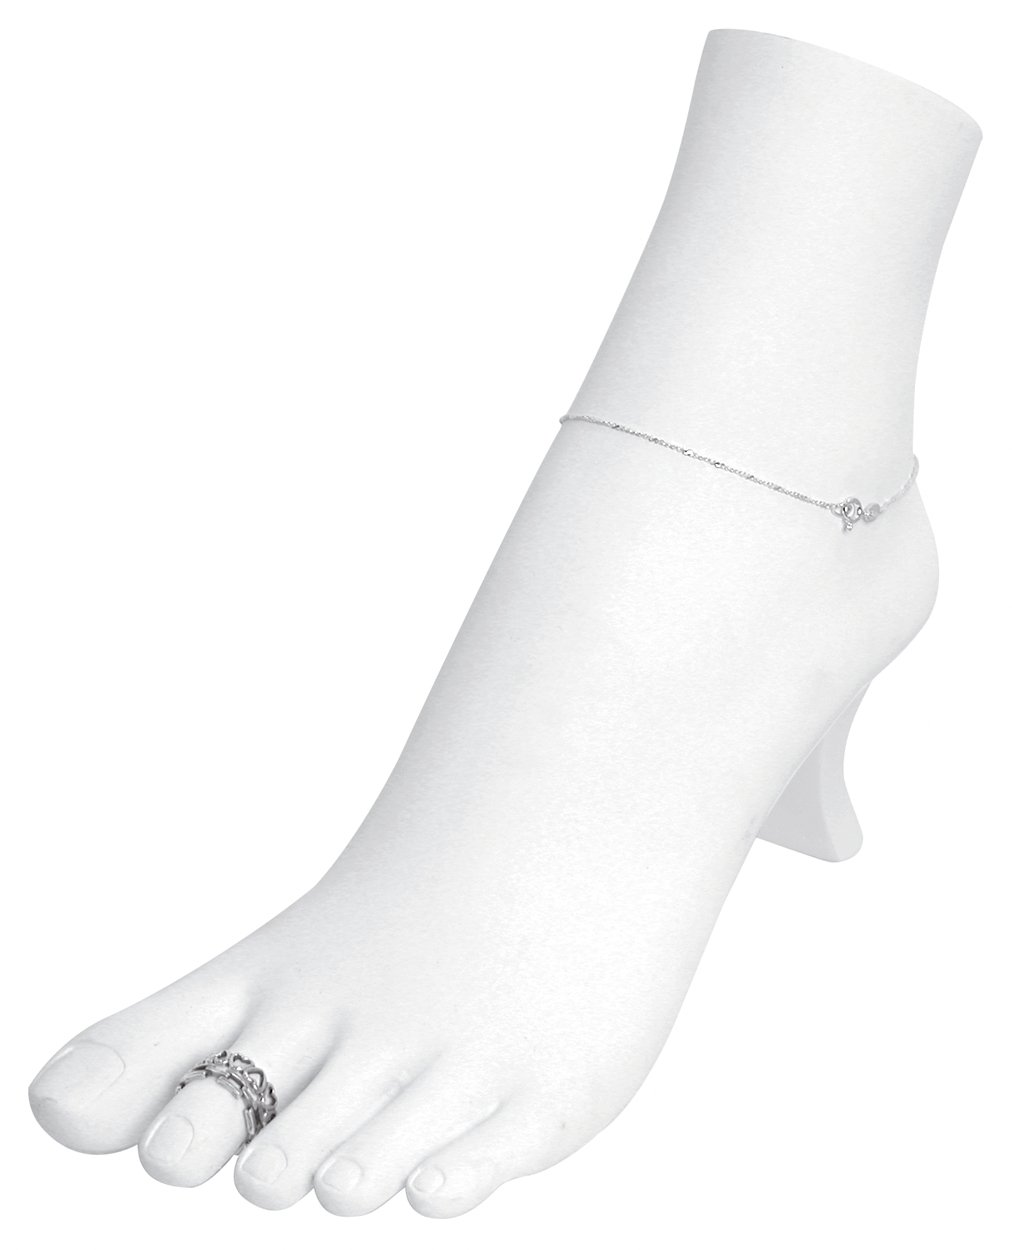 White Polystyrene Toe Ring Chain Ankle Bracelet Foot Display Storage Showcase Stand